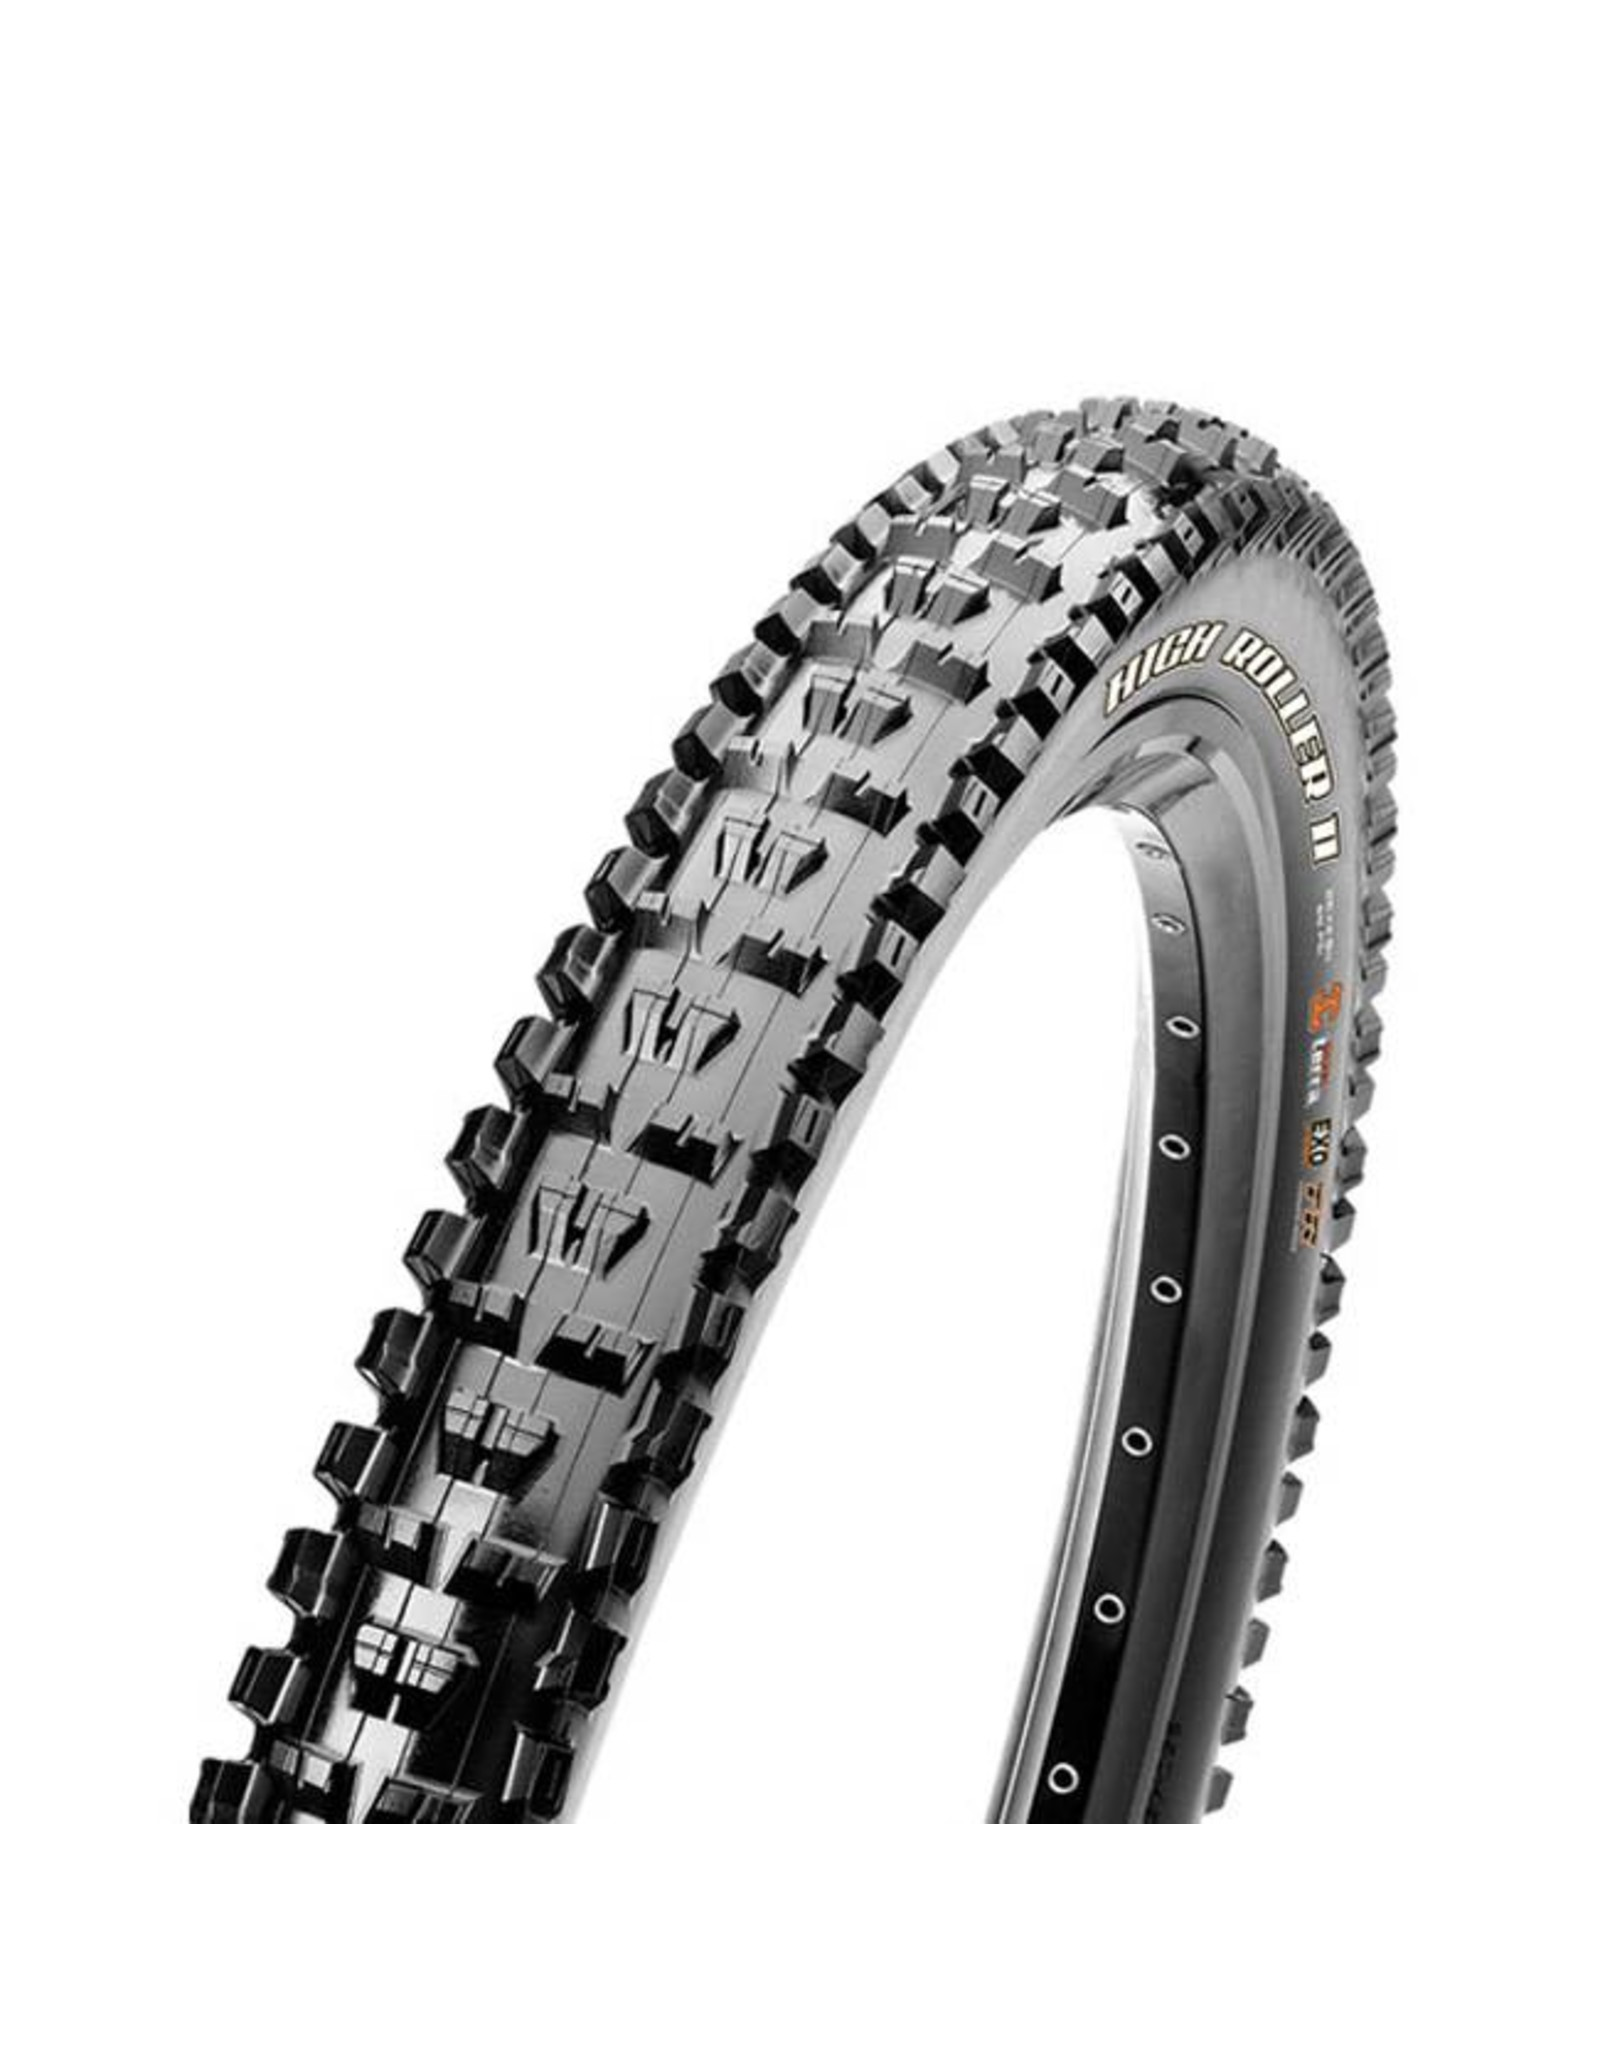 "Maxxis Maxxis High Roller II Tire: 27.5 x 2.80"", Folding, 60tpi, Dual Compound, EXO, Tubeless Ready, Black"